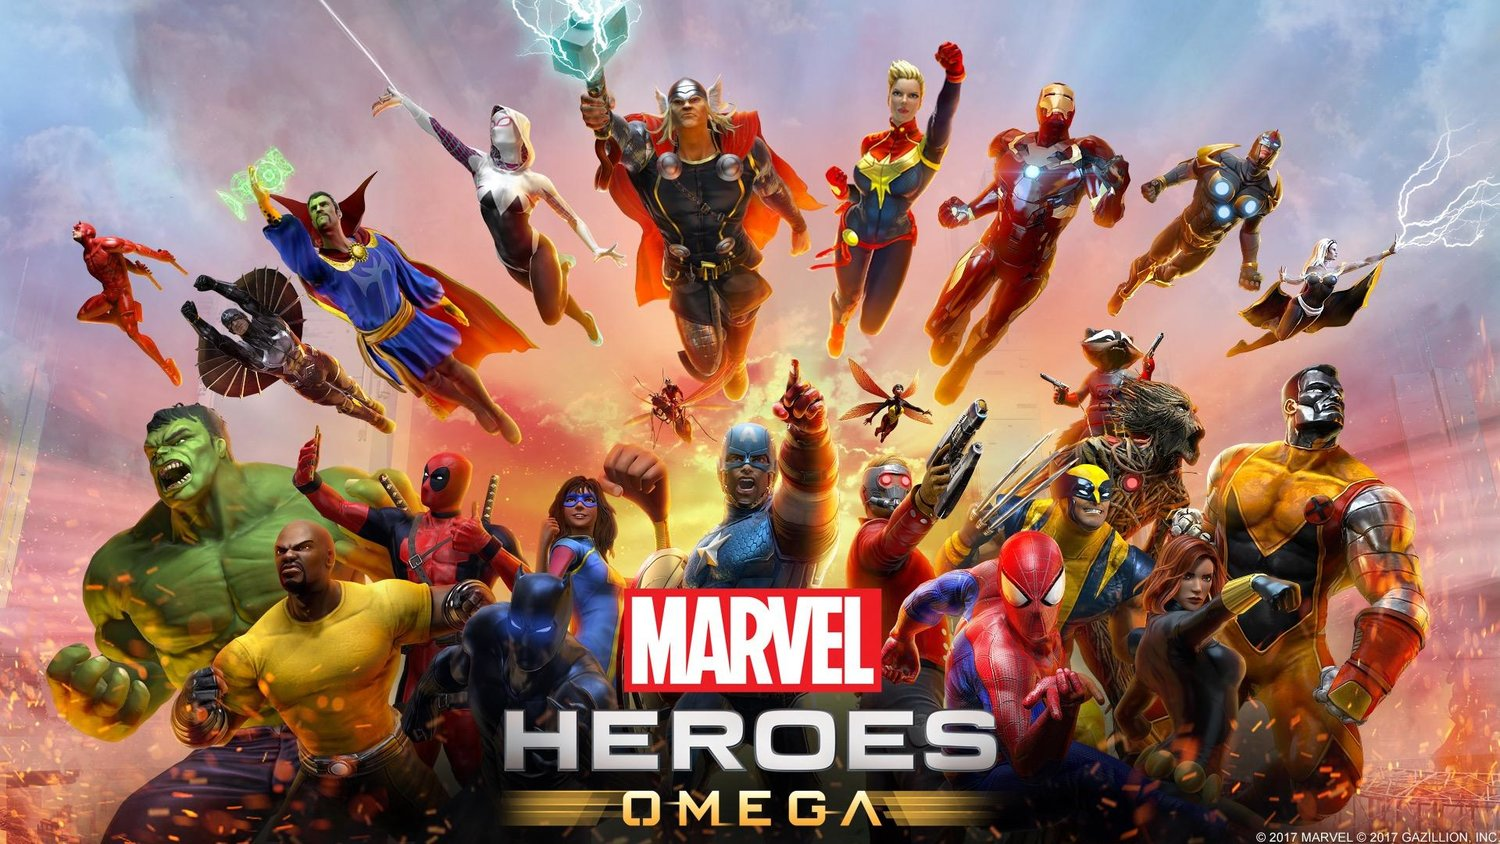 MARVEL HEROES OMEGA Getting Exclusive PS4 Beta